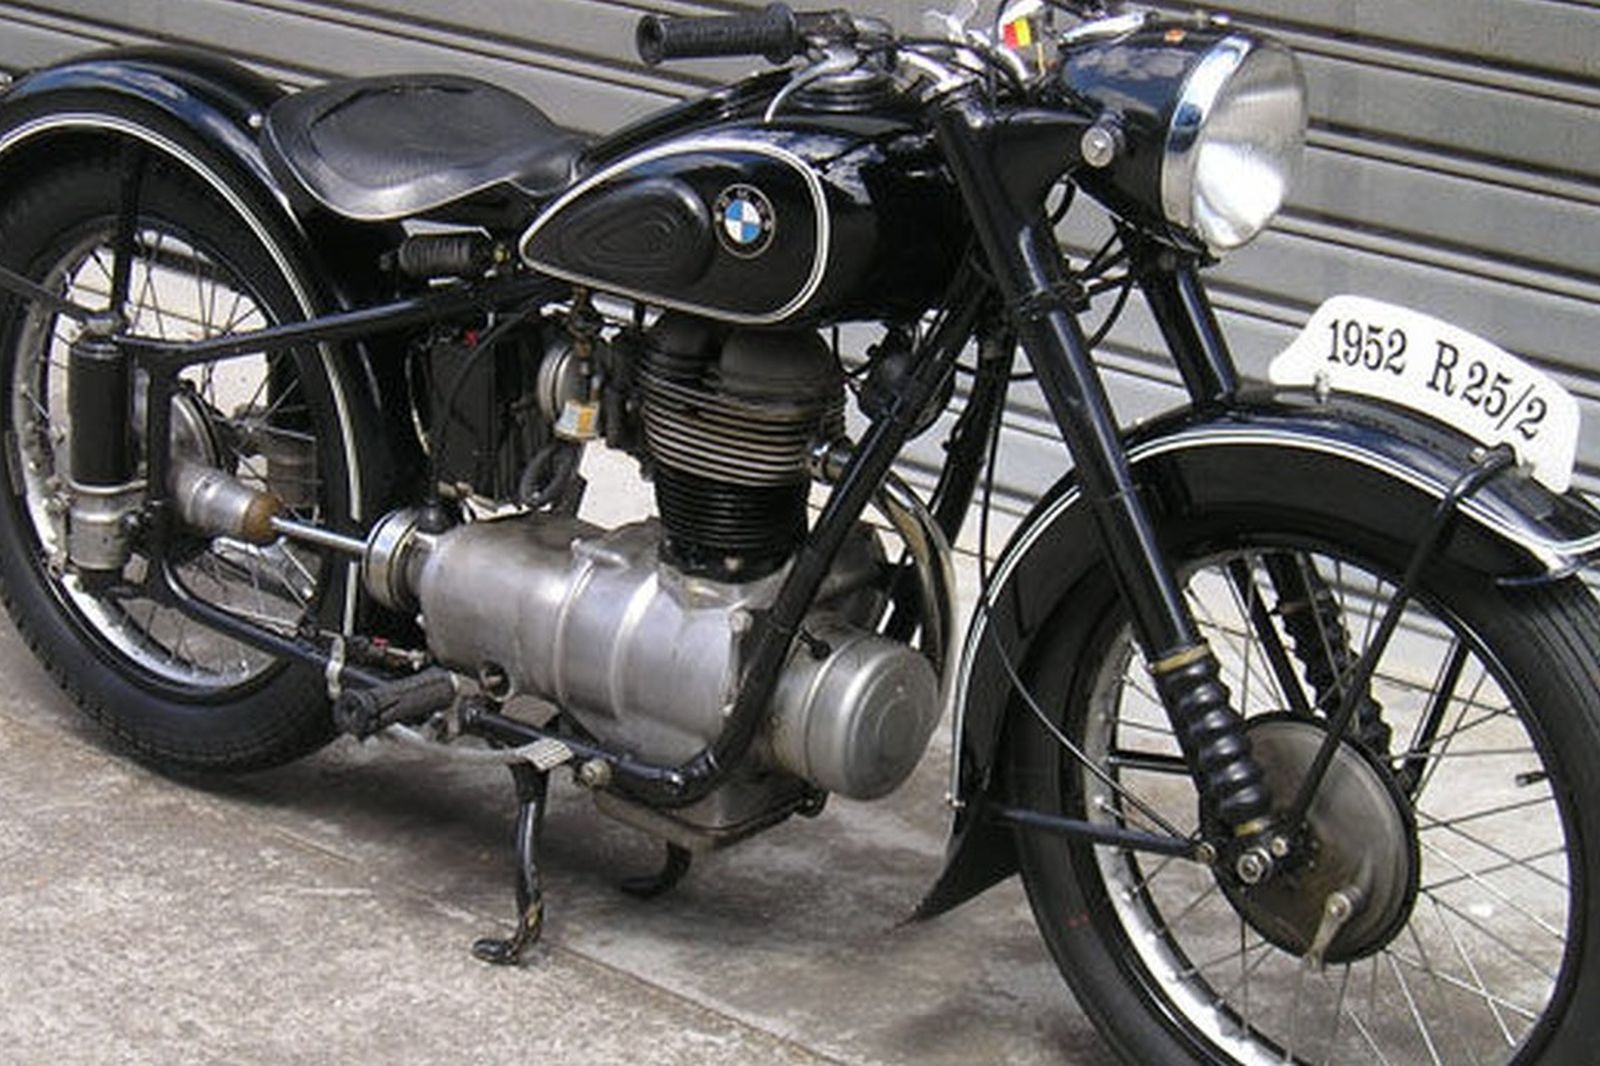 Sell My Motorcycle >> Sold: BMW R25/2 Solo Motorcycle Auctions - Lot 7 - Shannons